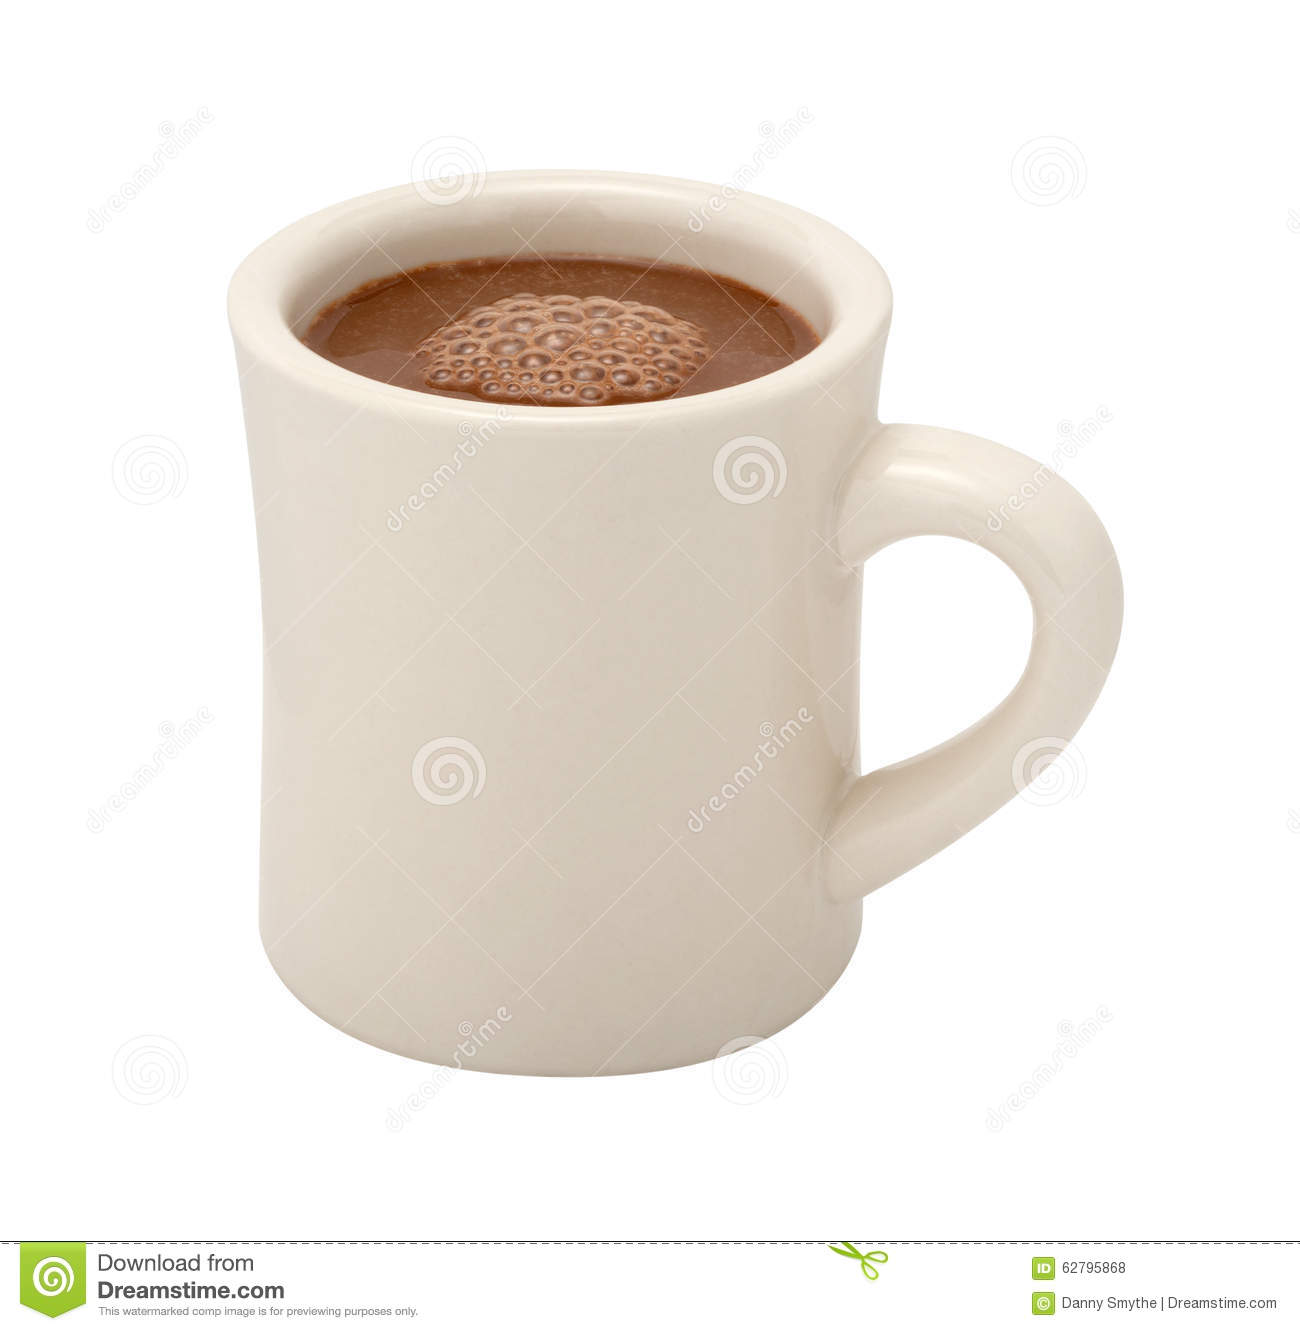 Hot Chocolate in a white ceramic mug. The image is a cut out, isolated ...